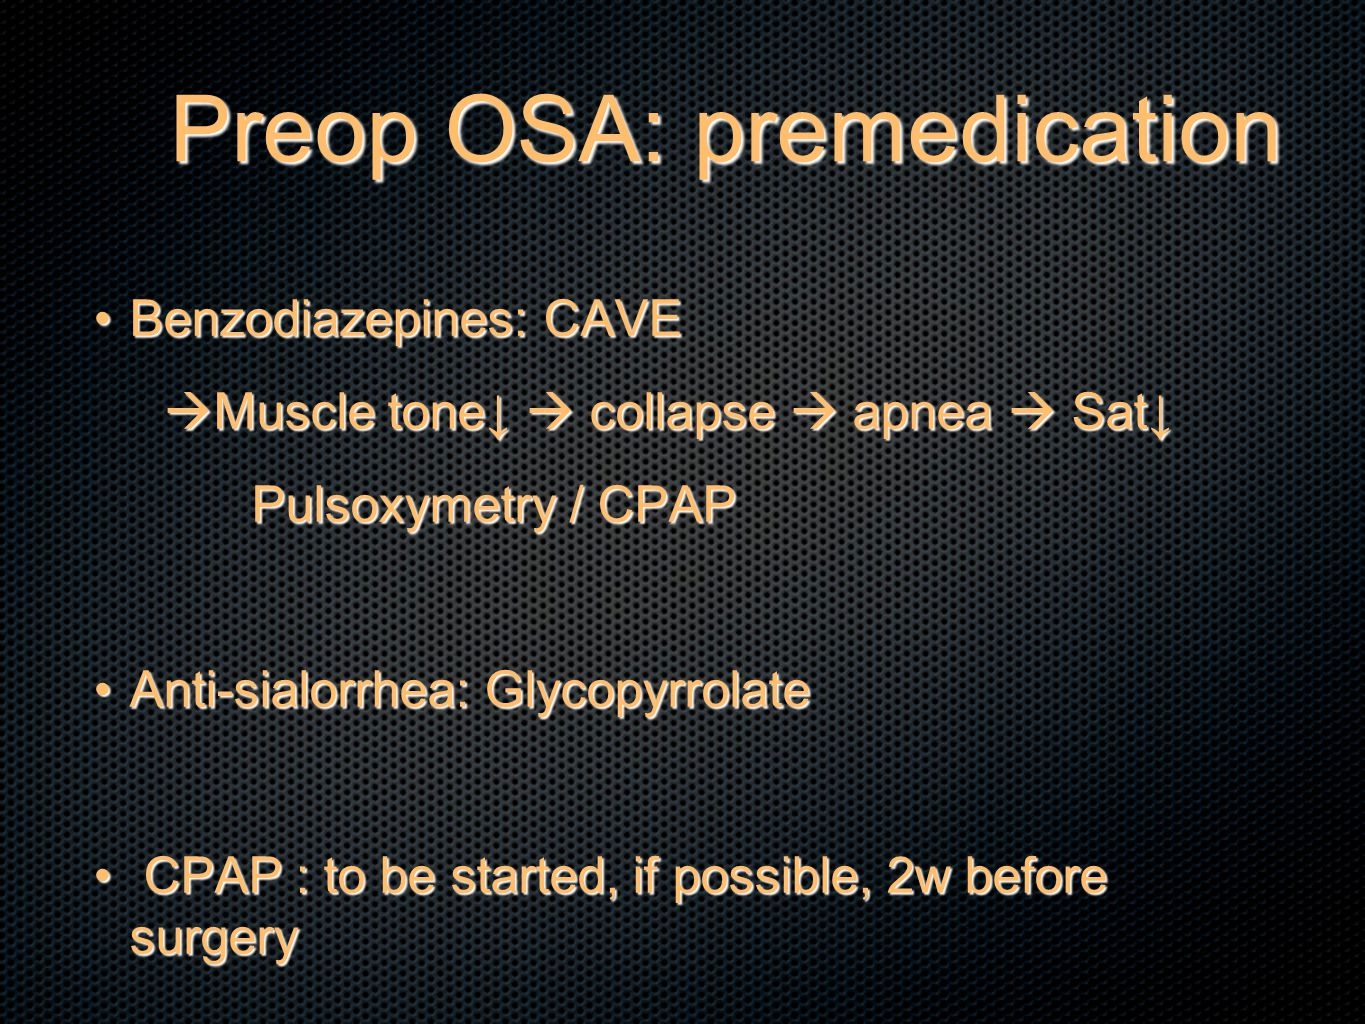 Preop OSA: premedication Benzodiazepines: CAVEBenzodiazepines: CAVE  Muscle tone↓  collapse  apnea  Sat↓ Pulsoxymetry / CPAP Pulsoxymetry / CPAP Anti-sialorrhea: GlycopyrrolateAnti-sialorrhea: Glycopyrrolate CPAP : to be started, if possible, 2w before surgery CPAP : to be started, if possible, 2w before surgery